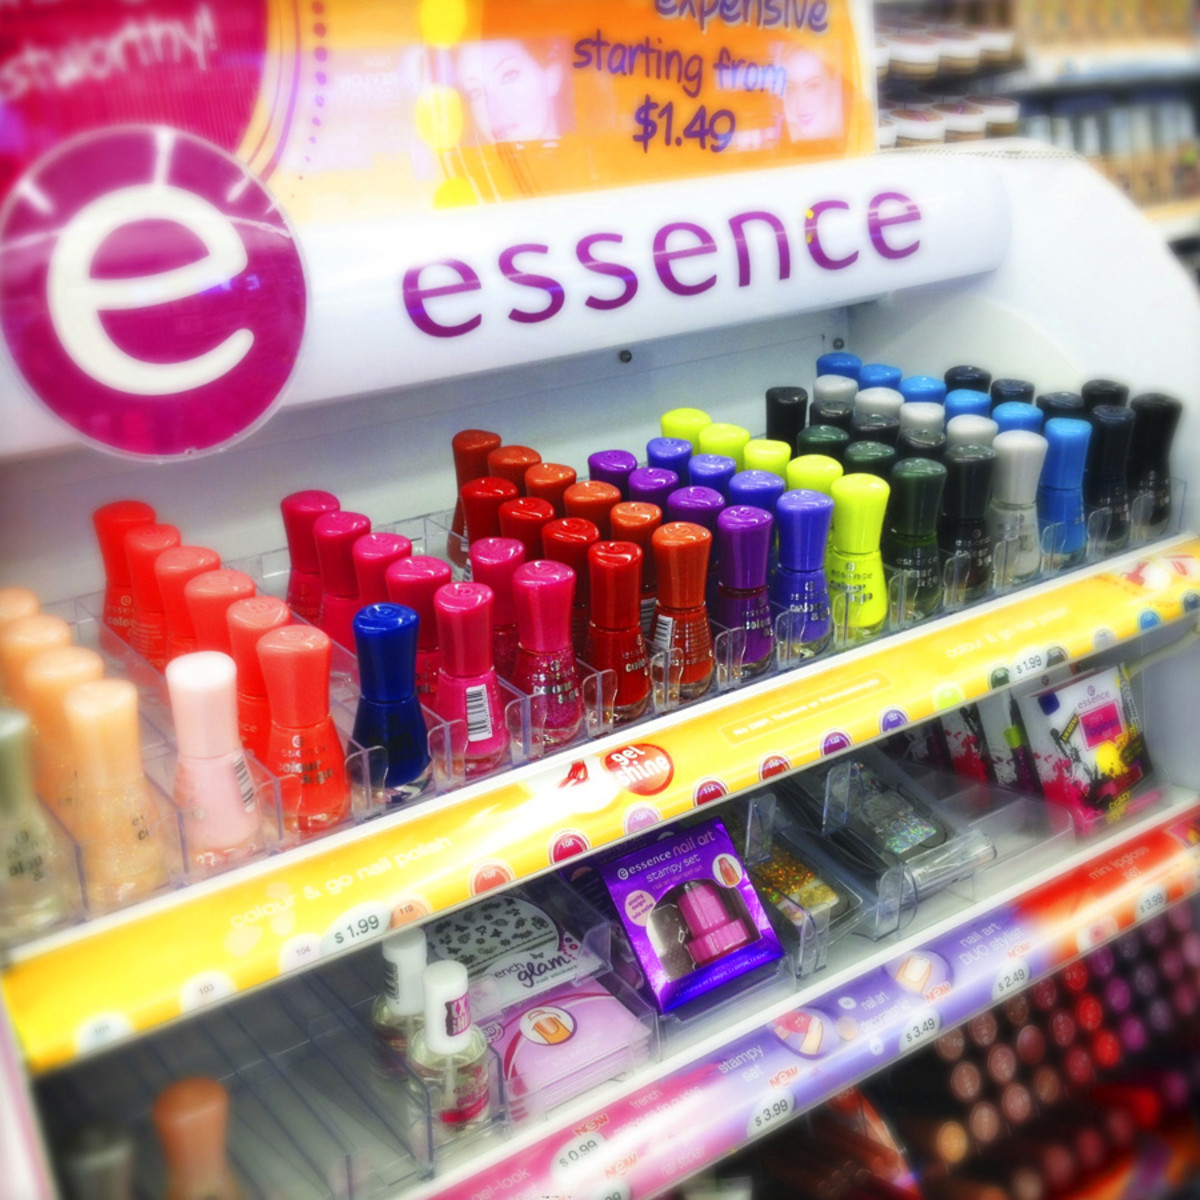 Essence Cosmetics Display at Shoppers Drug Mart